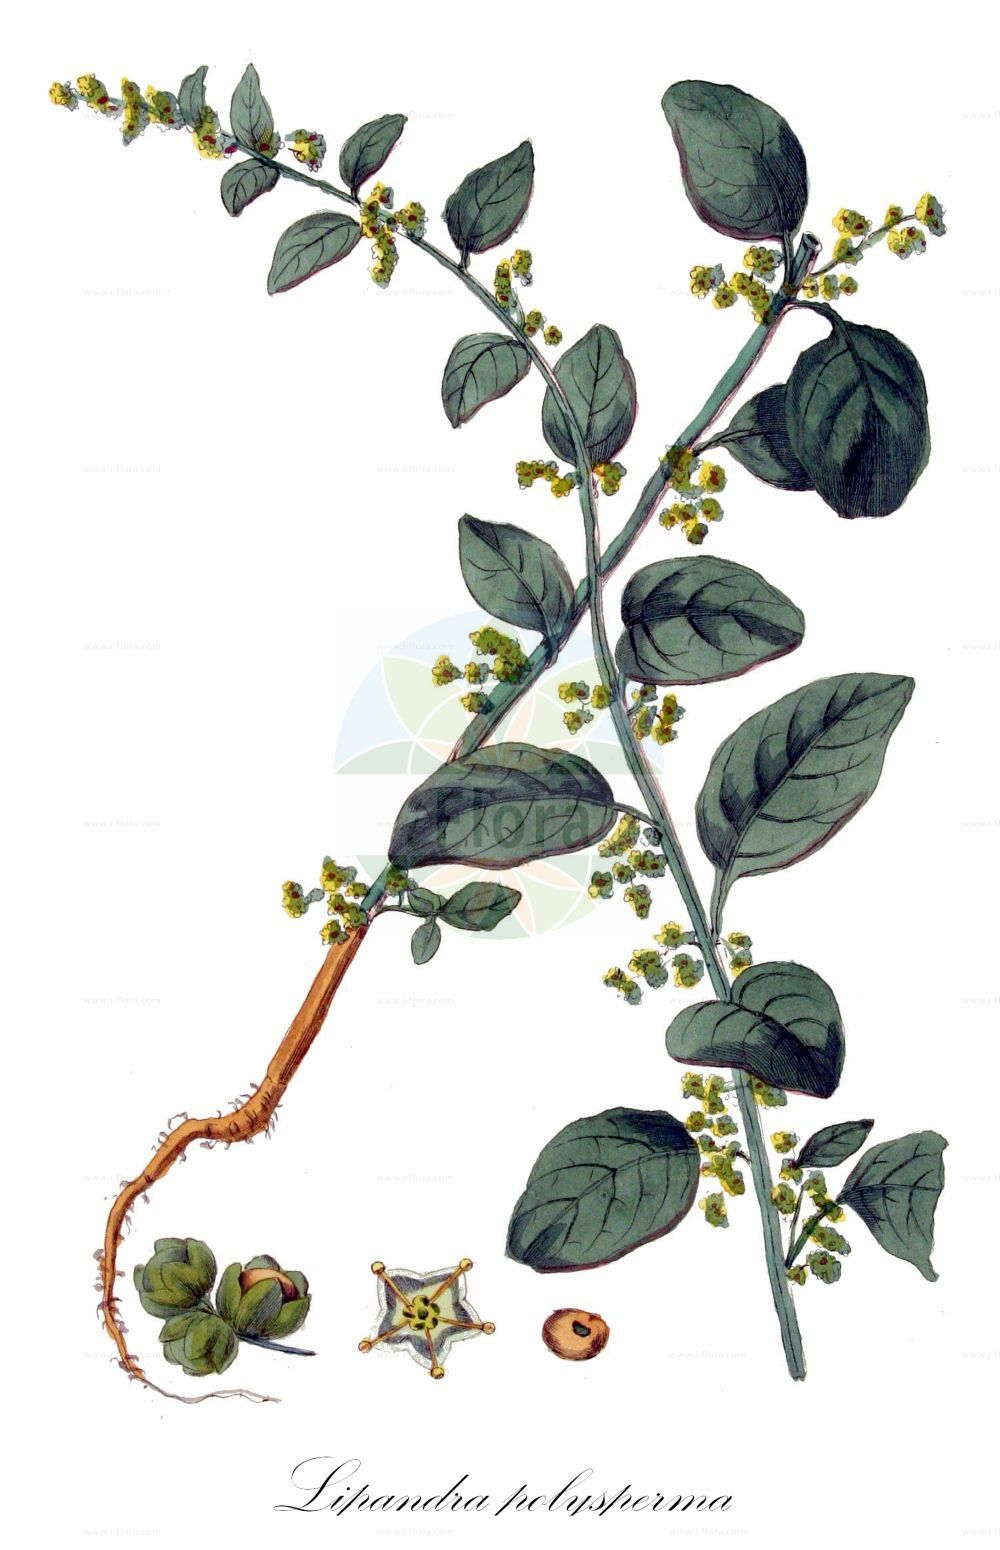 Historische Abbildung von Lipandra polysperma (Vielsamiger Gaensefuss - Many-seeded Goosefoot). Das Bild zeigt Blatt, Bluete, Frucht und Same. ---- Historical Drawing of Lipandra polysperma (Vielsamiger Gaensefuss - Many-seeded Goosefoot).The image is showing leaf, flower, fruit and seed.(Lipandra polysperma,Vielsamiger Gaensefuss,Many-seeded Goosefoot,Chenopodium acutifolium,Chenopodium polyspermum,,Allseed,Manyseed Goosefoot,Lipandra,Amaranthaceae,Fuchsschwanzgewaechse,Pigweed family,Blatt,Bluete,Frucht,Same,leaf,flower,fruit,seed,Kops (1800-1934))